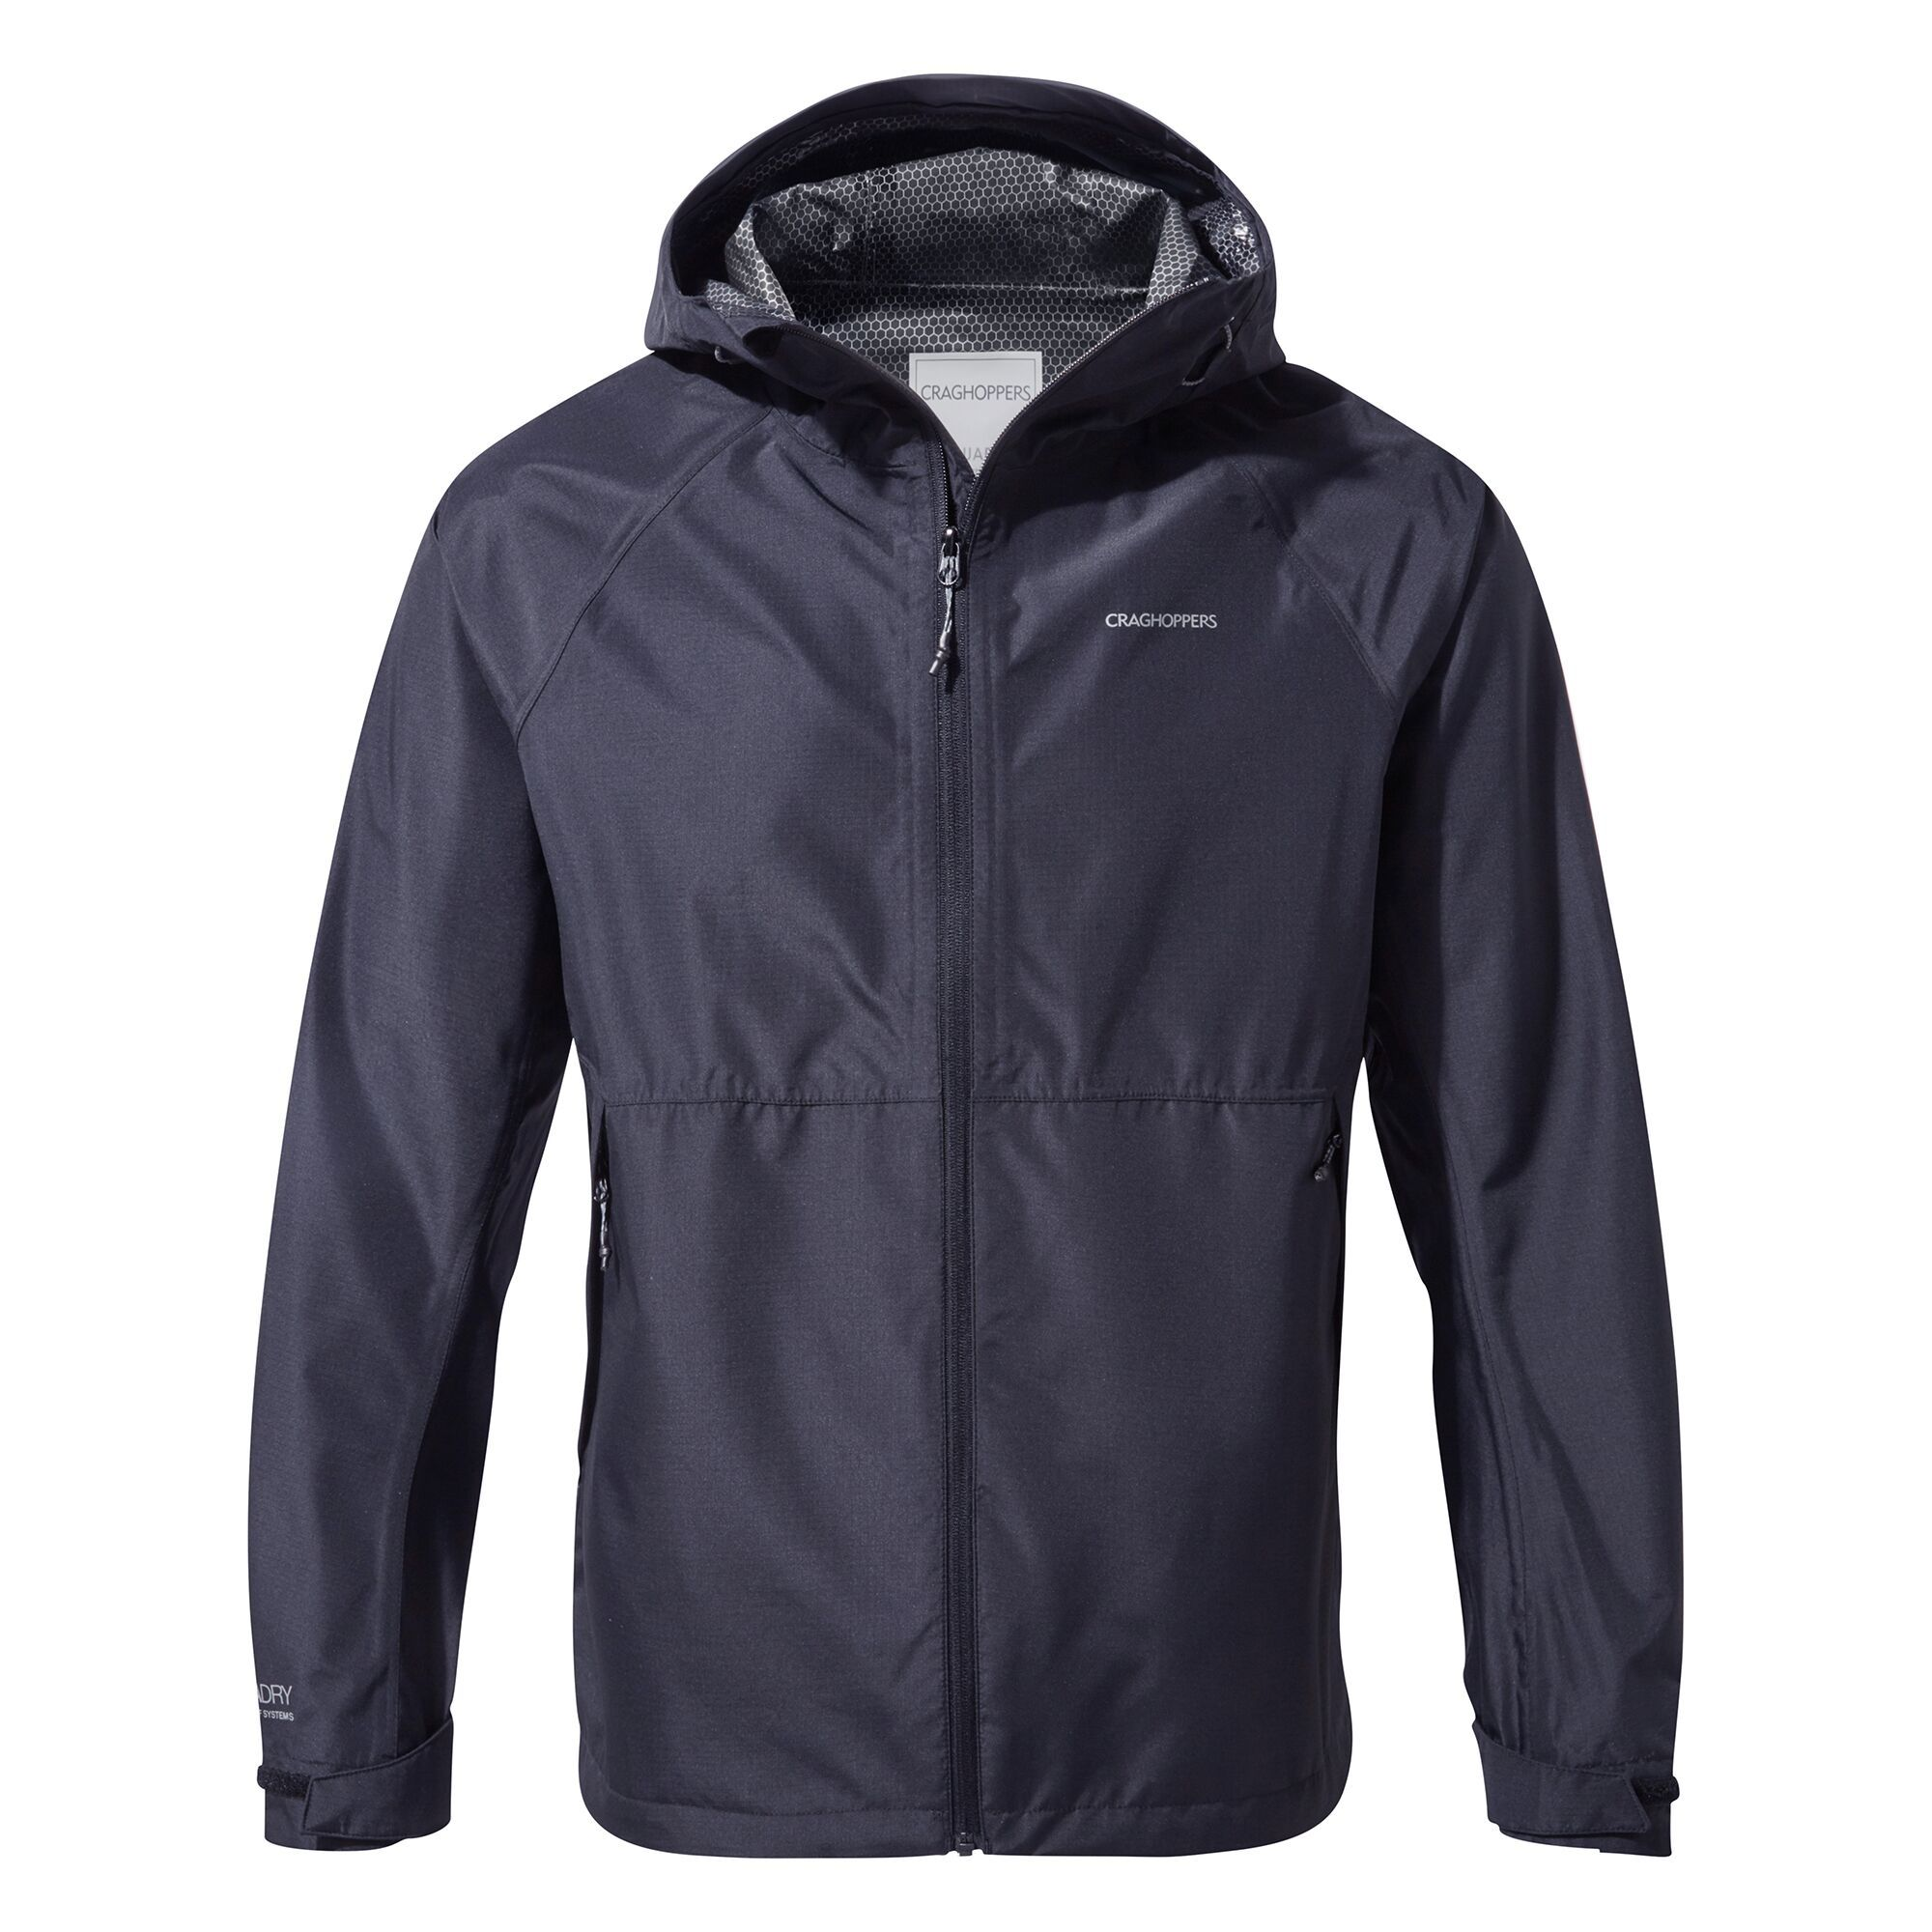 Craghoppers Mens Remus Jacket